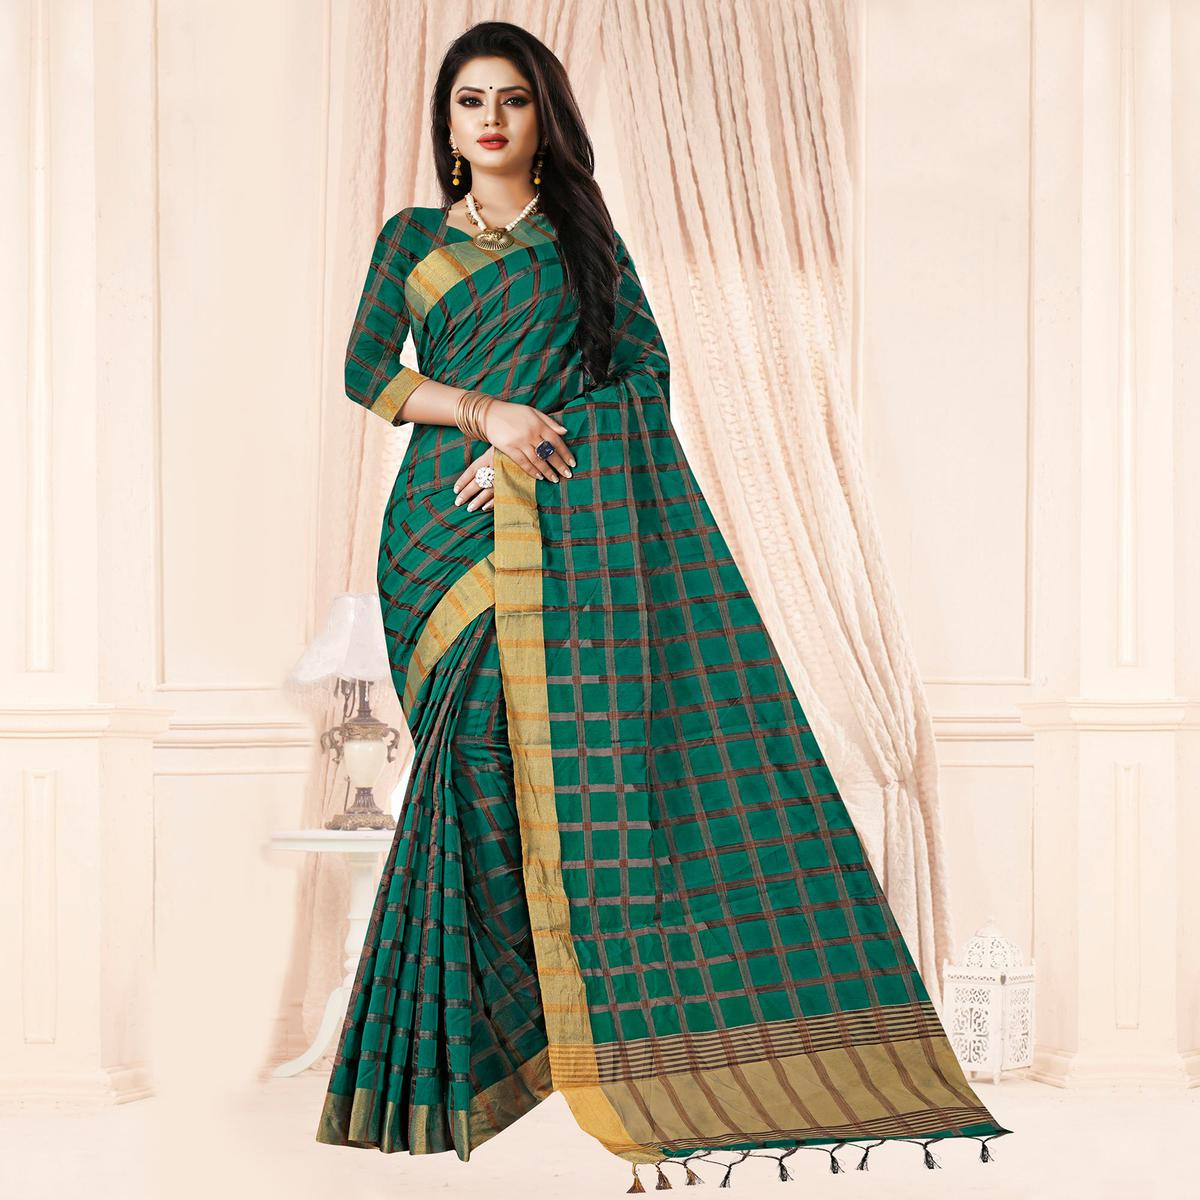 Capricious Teal Green Colored Festive Wear Checkered Printed Poly Cotton Saree